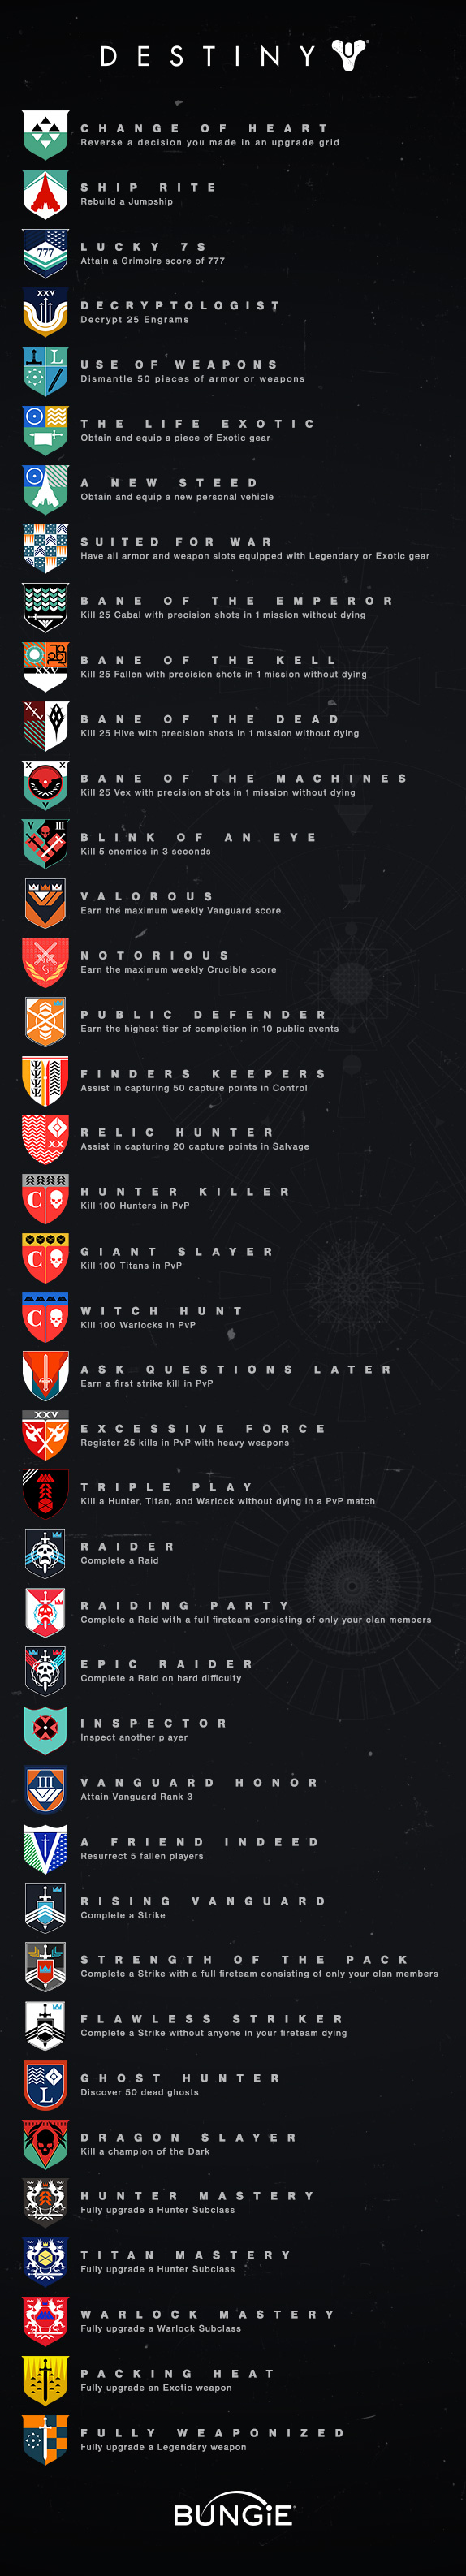 Destiny - Lista de achievements